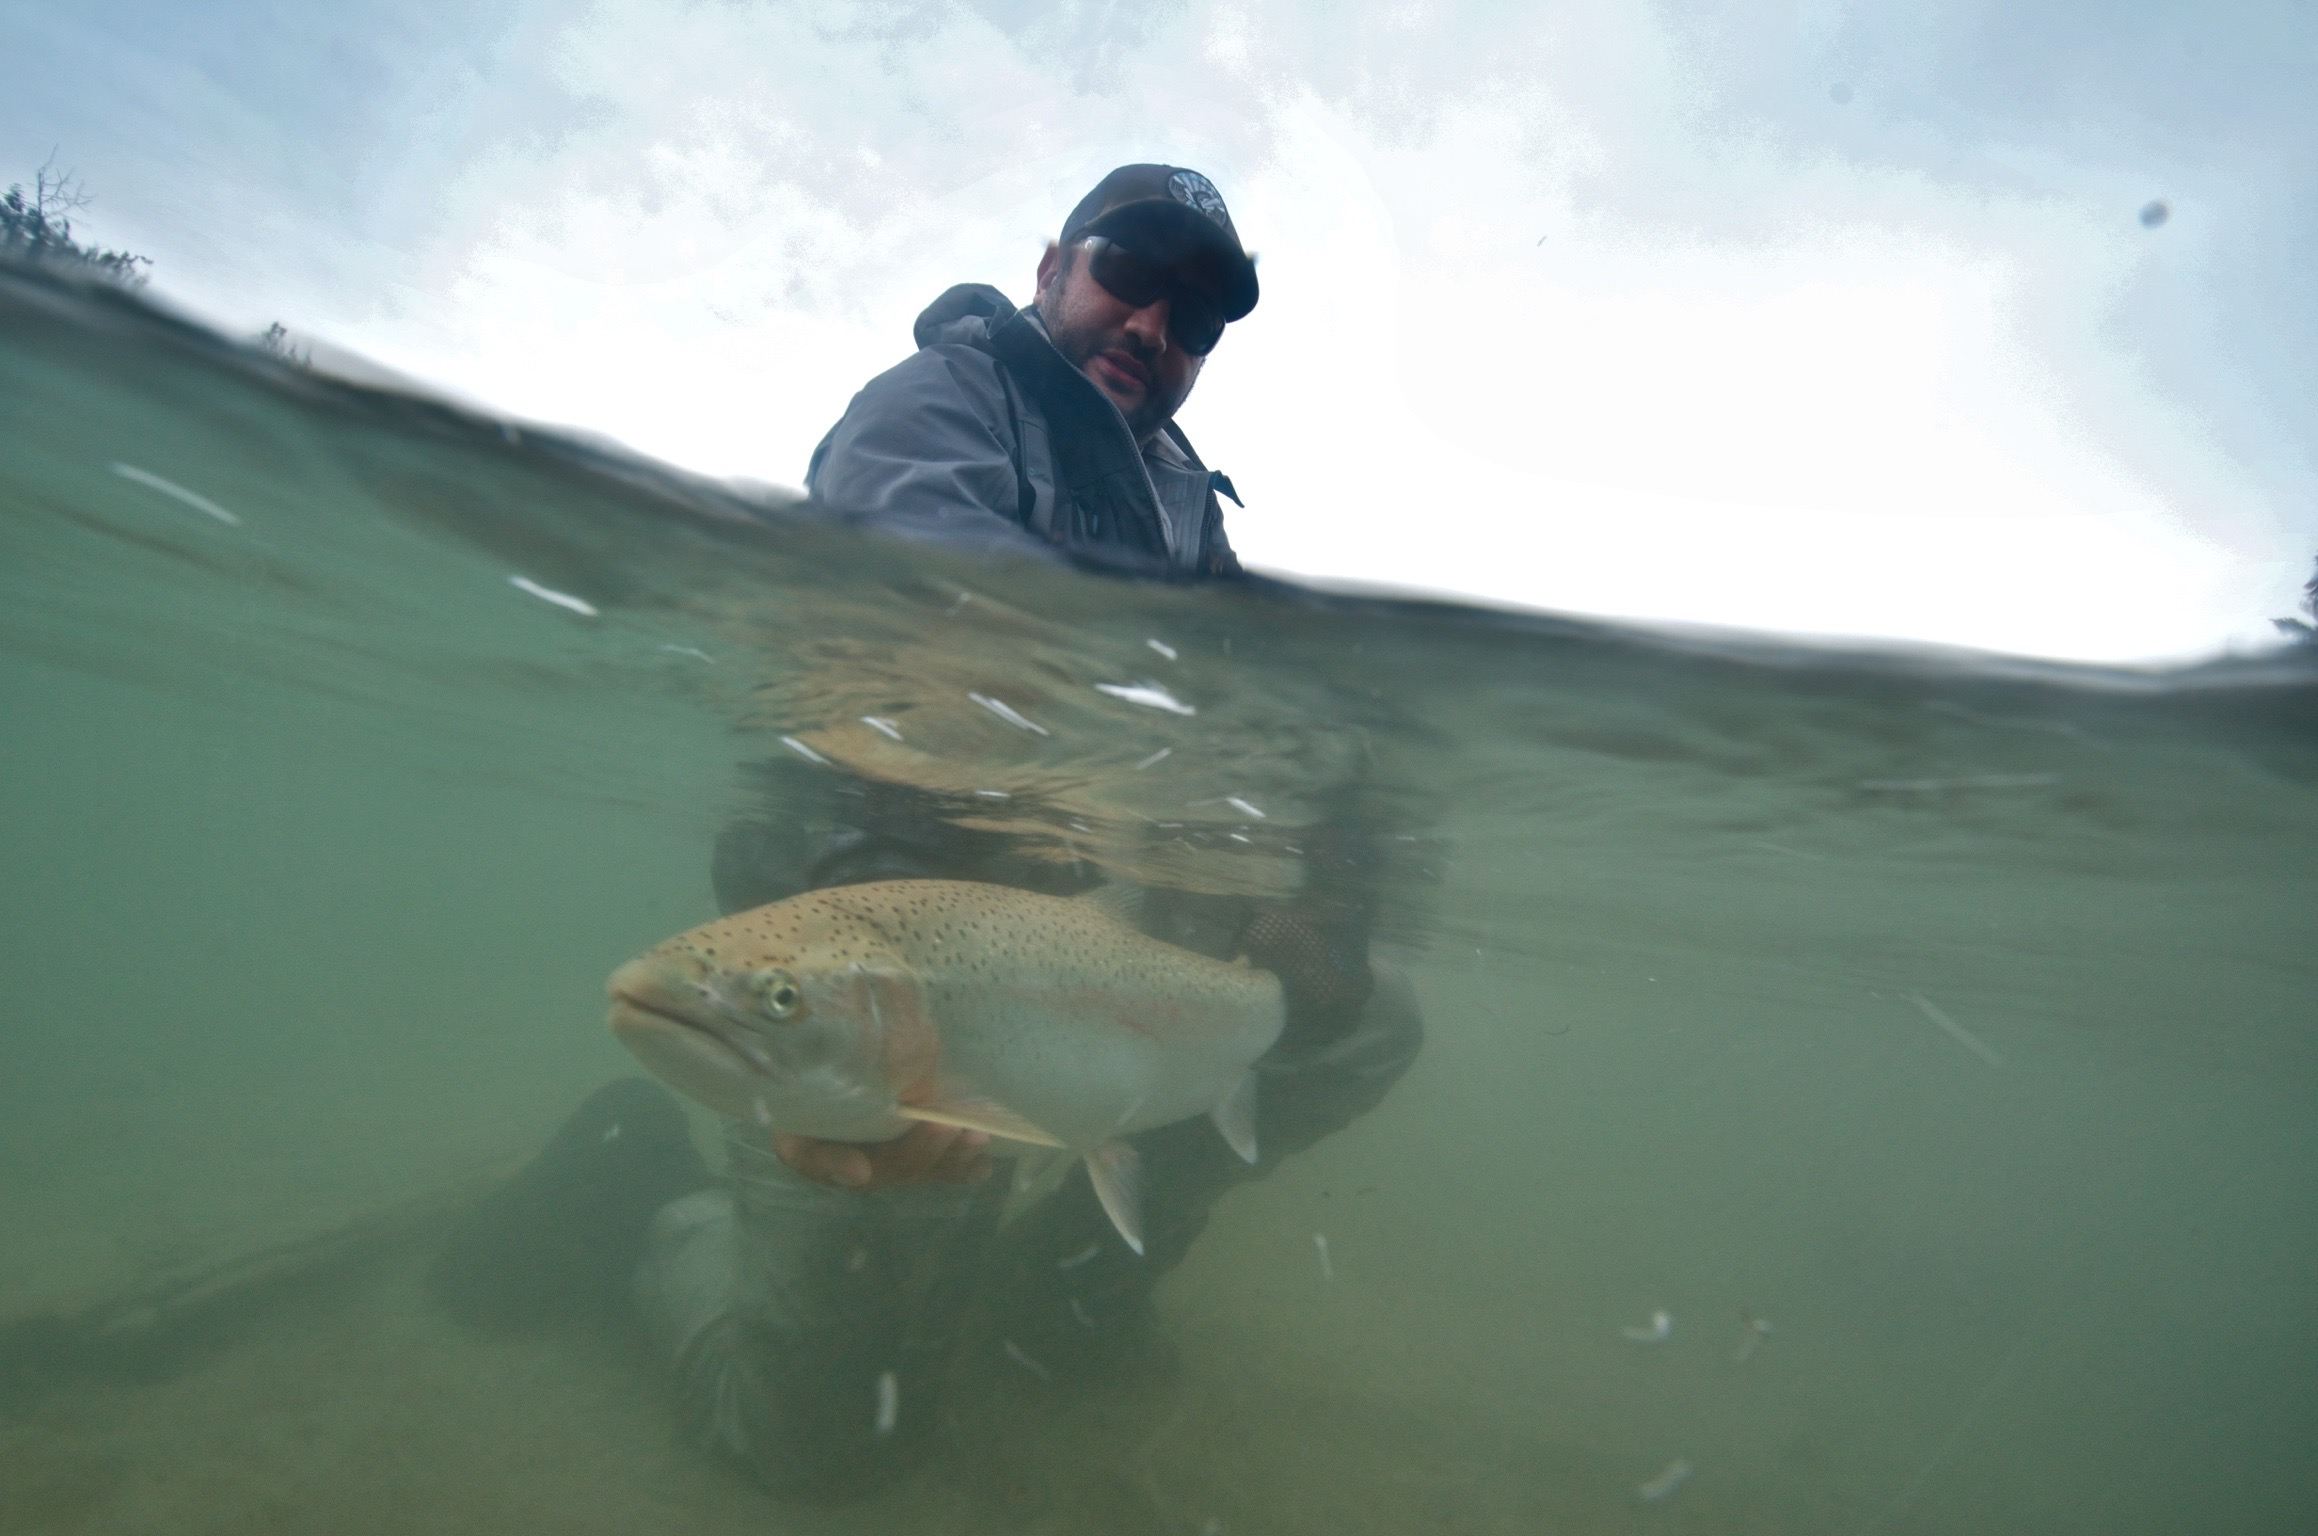 An image of an alaska trout fishing adventure with Outgoing Angling